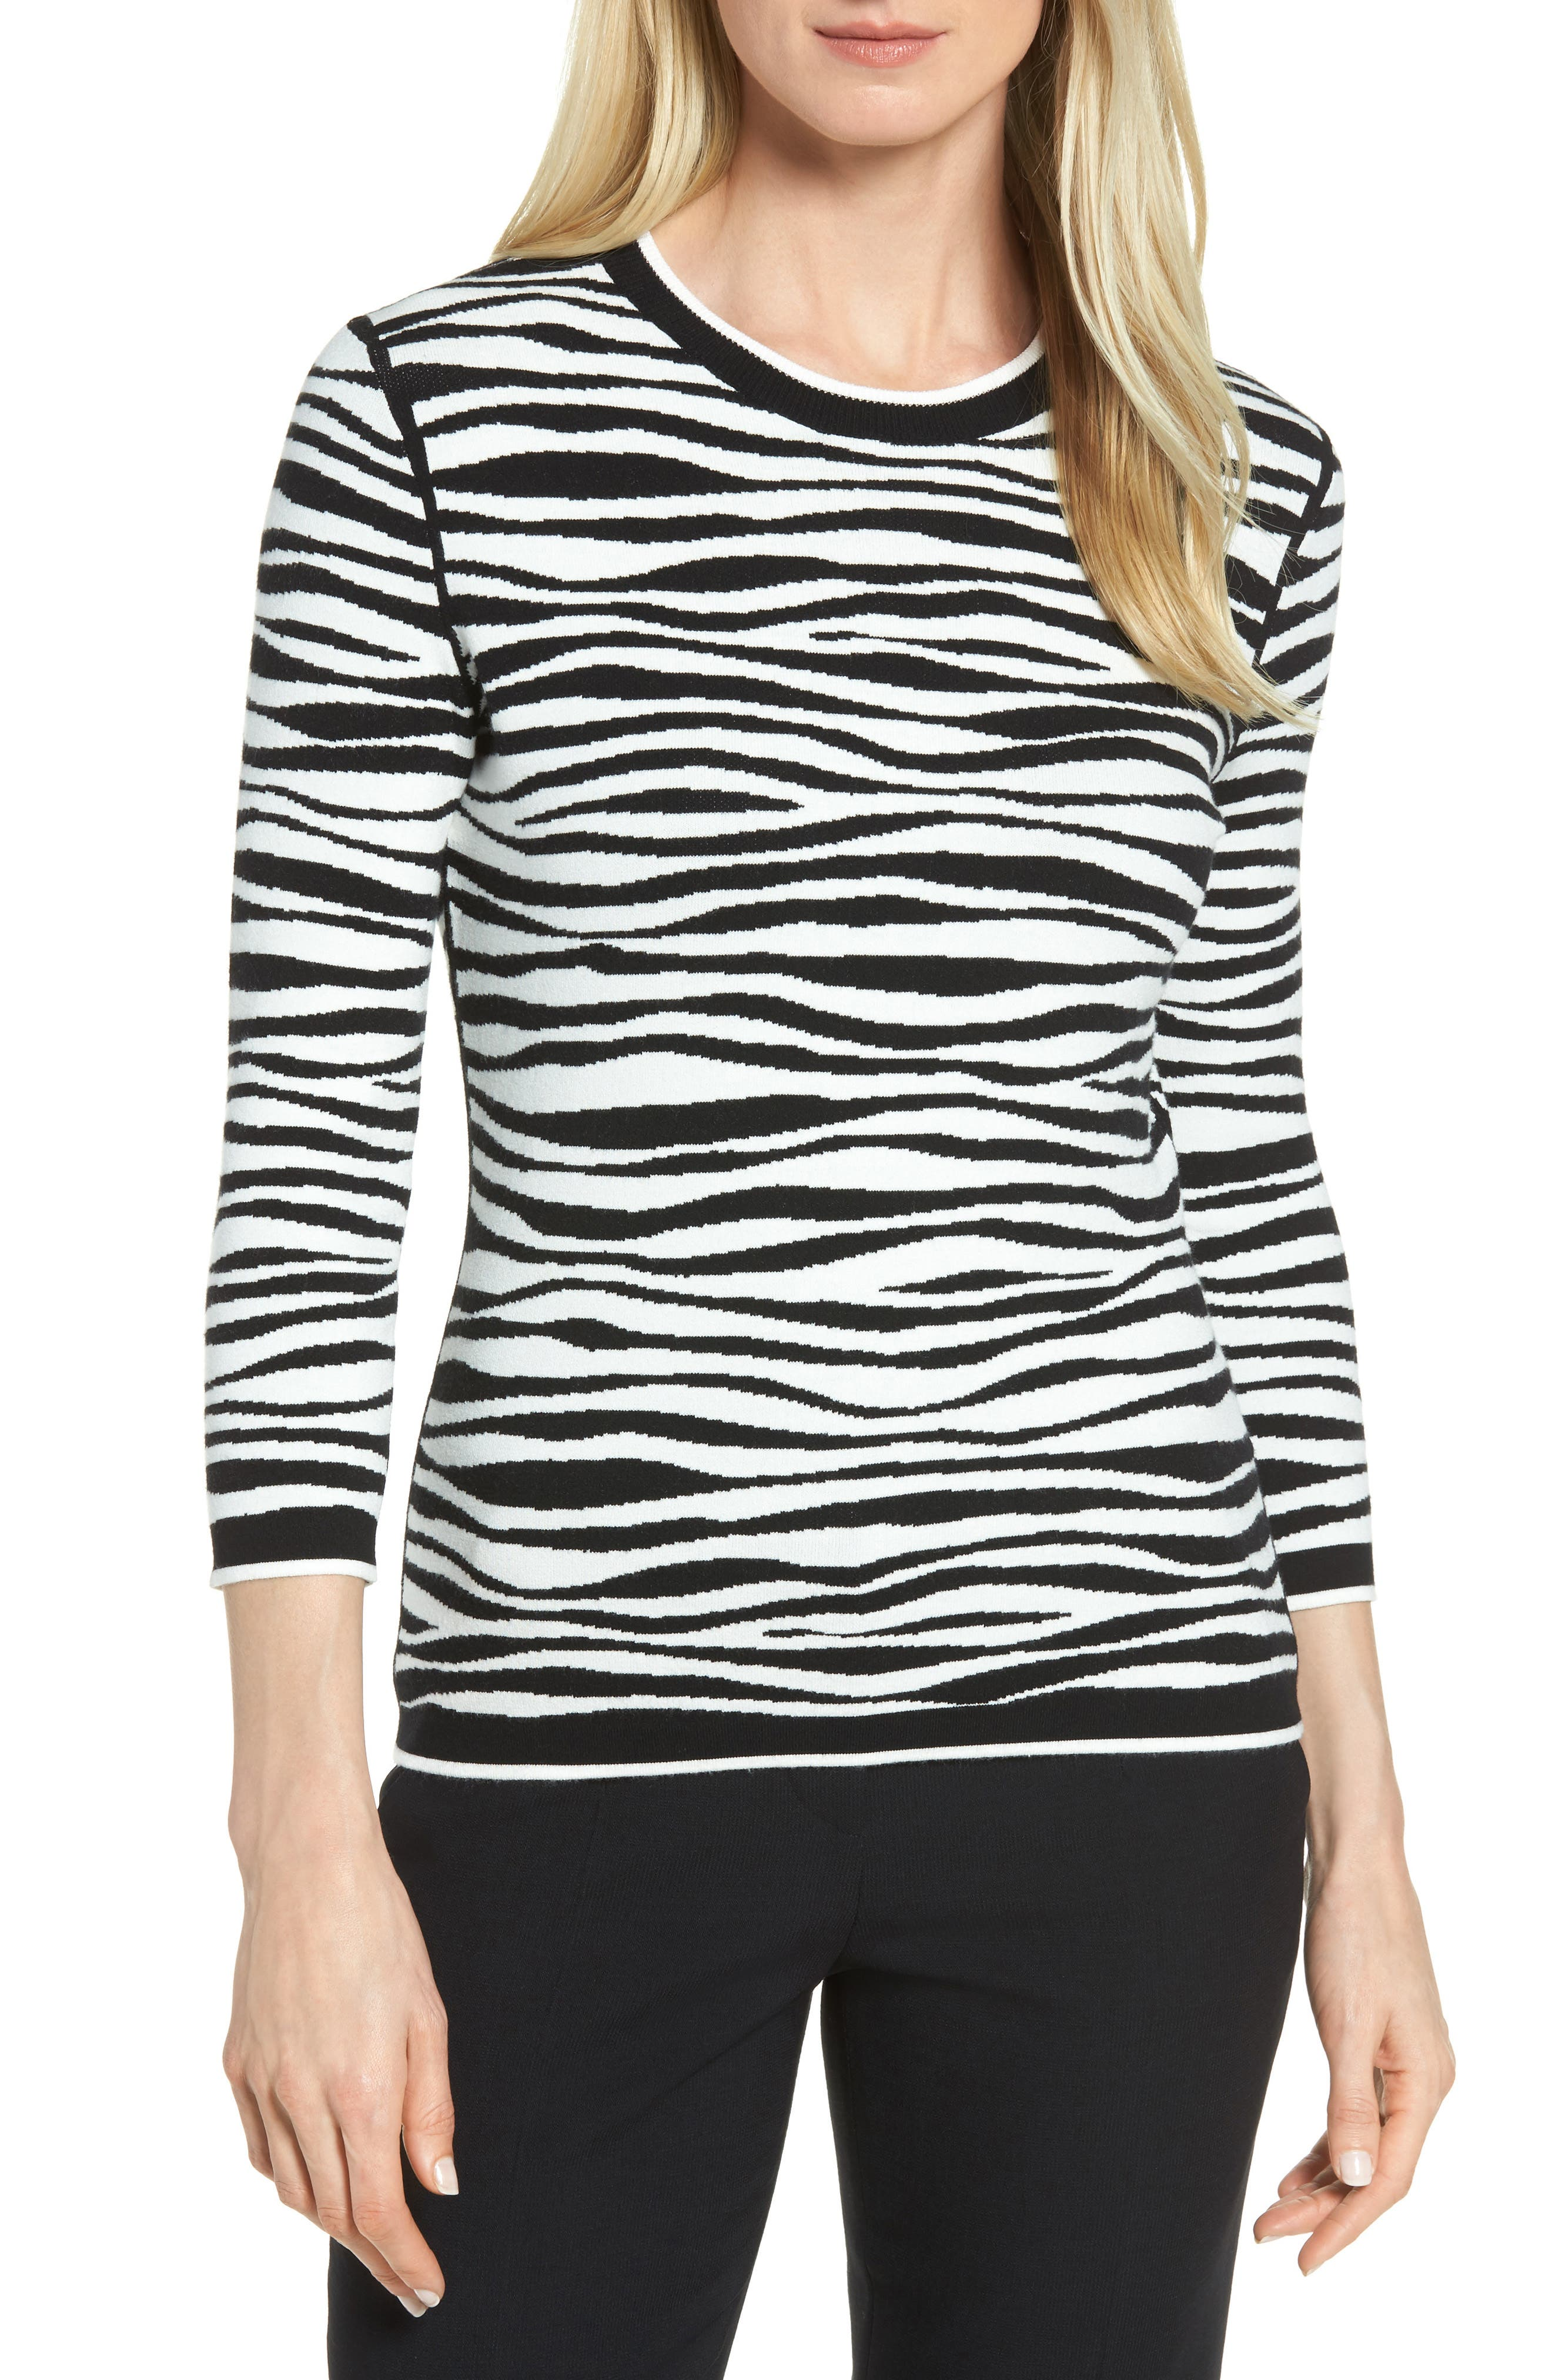 Alternate Image 1 Selected - BOSS Fatima Zebra Stripe Sweater